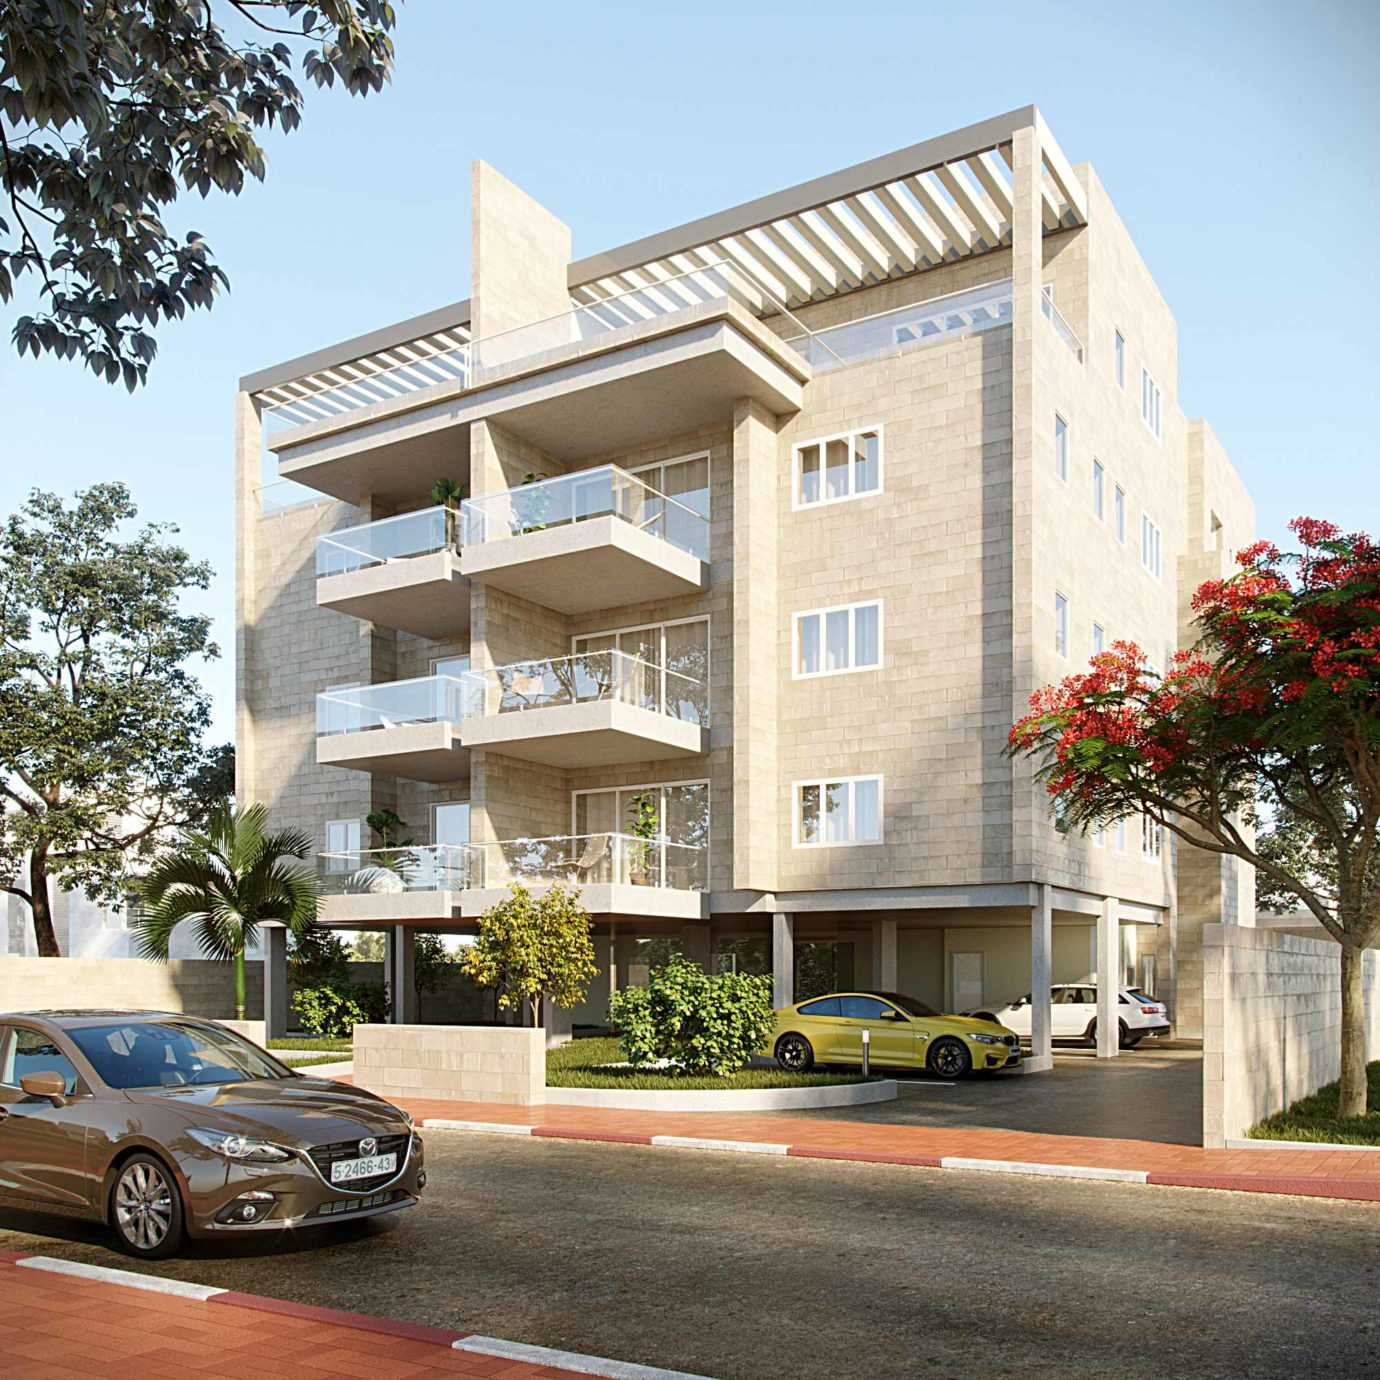 Residential building in Ness Ziona